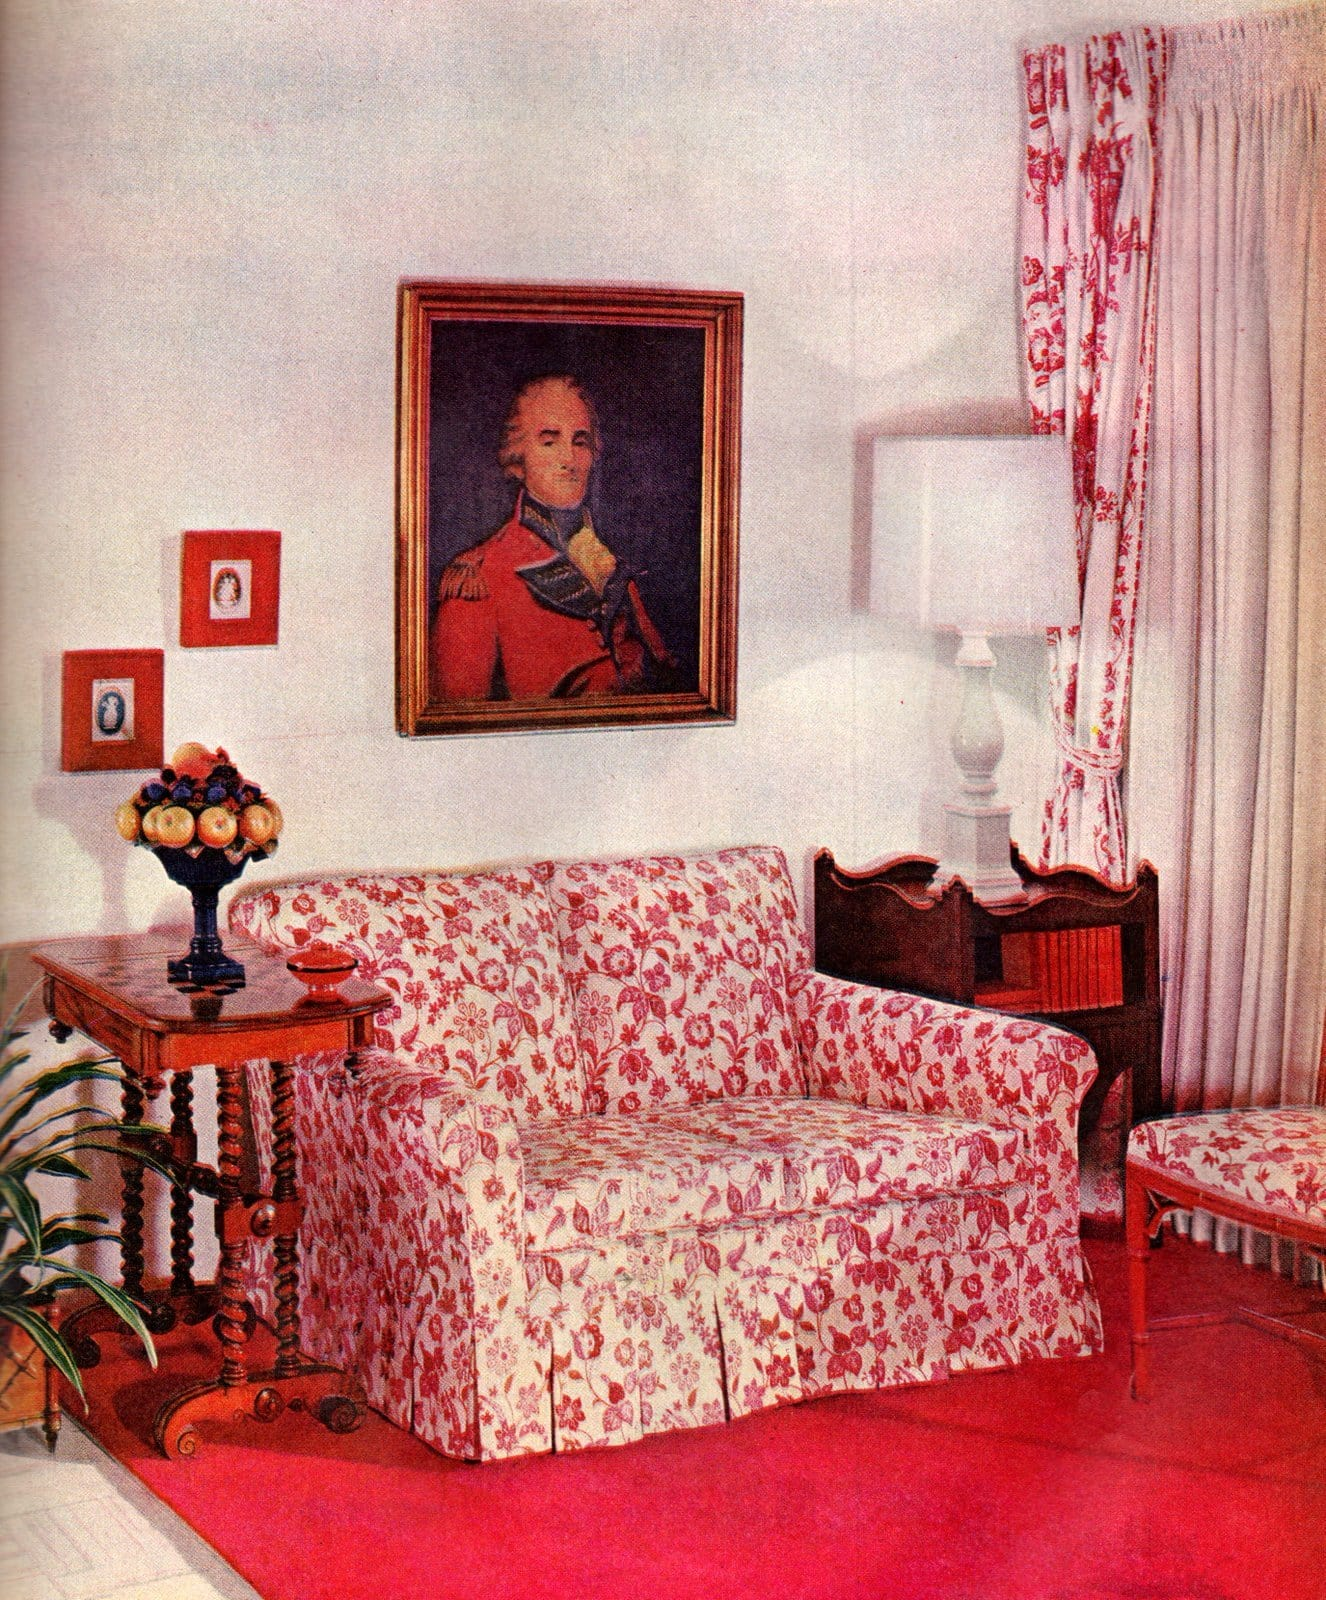 Retro home decorating - Use a single color boldly - Red (1)